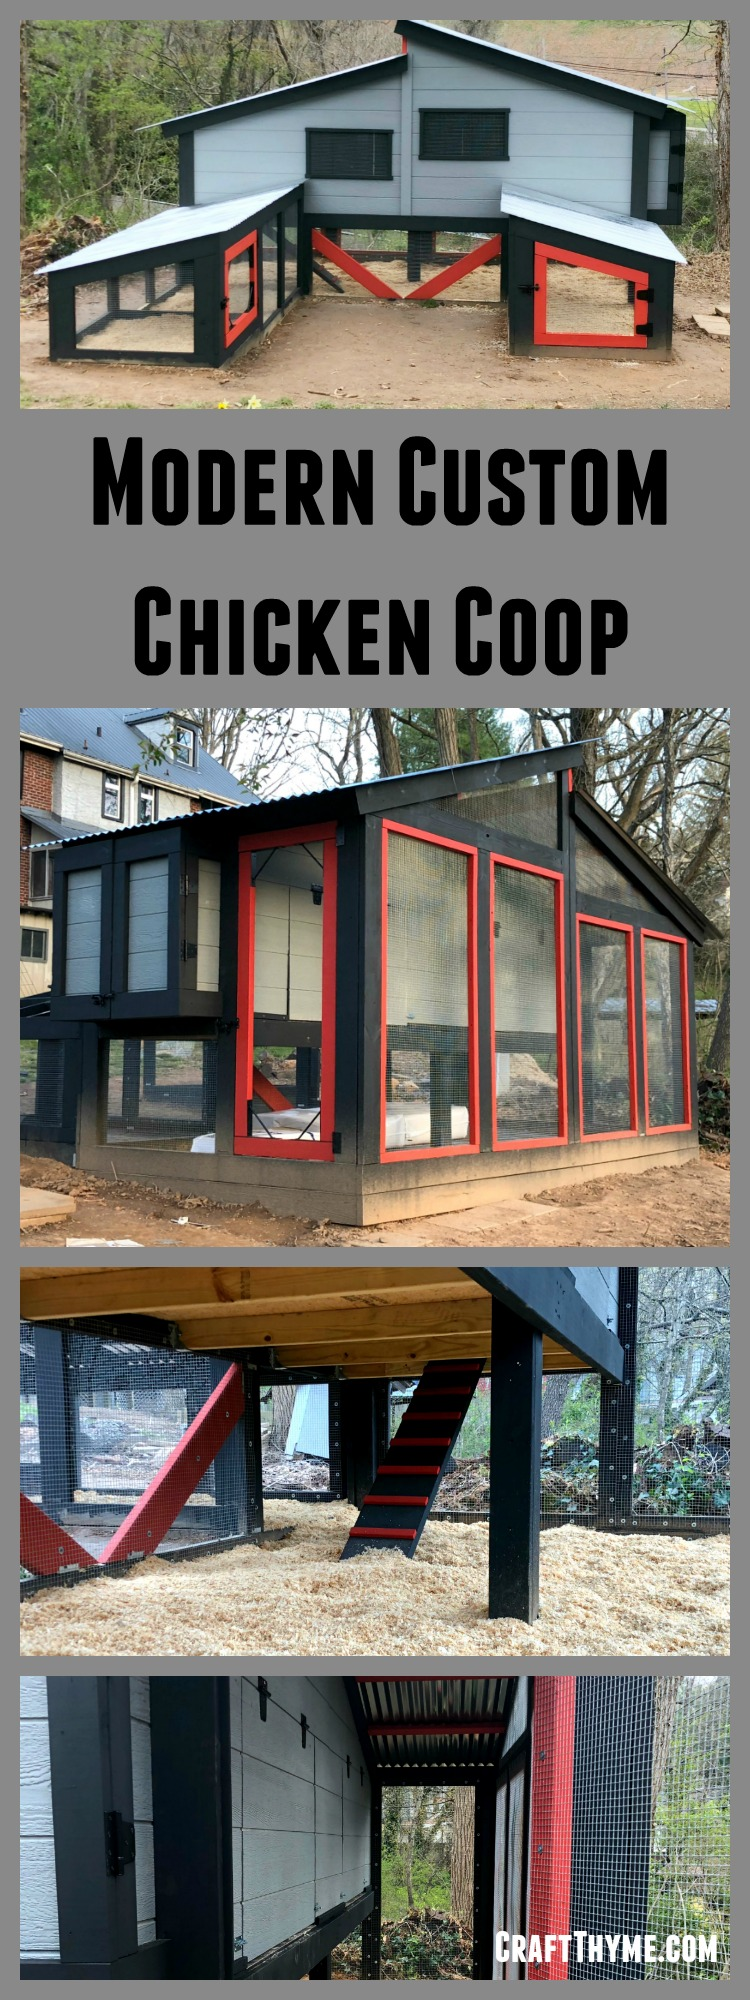 Modern Chicken coop design for your loved backyard chickens. This custom chicken coop design features red, black, and grey with metal shed roofs.